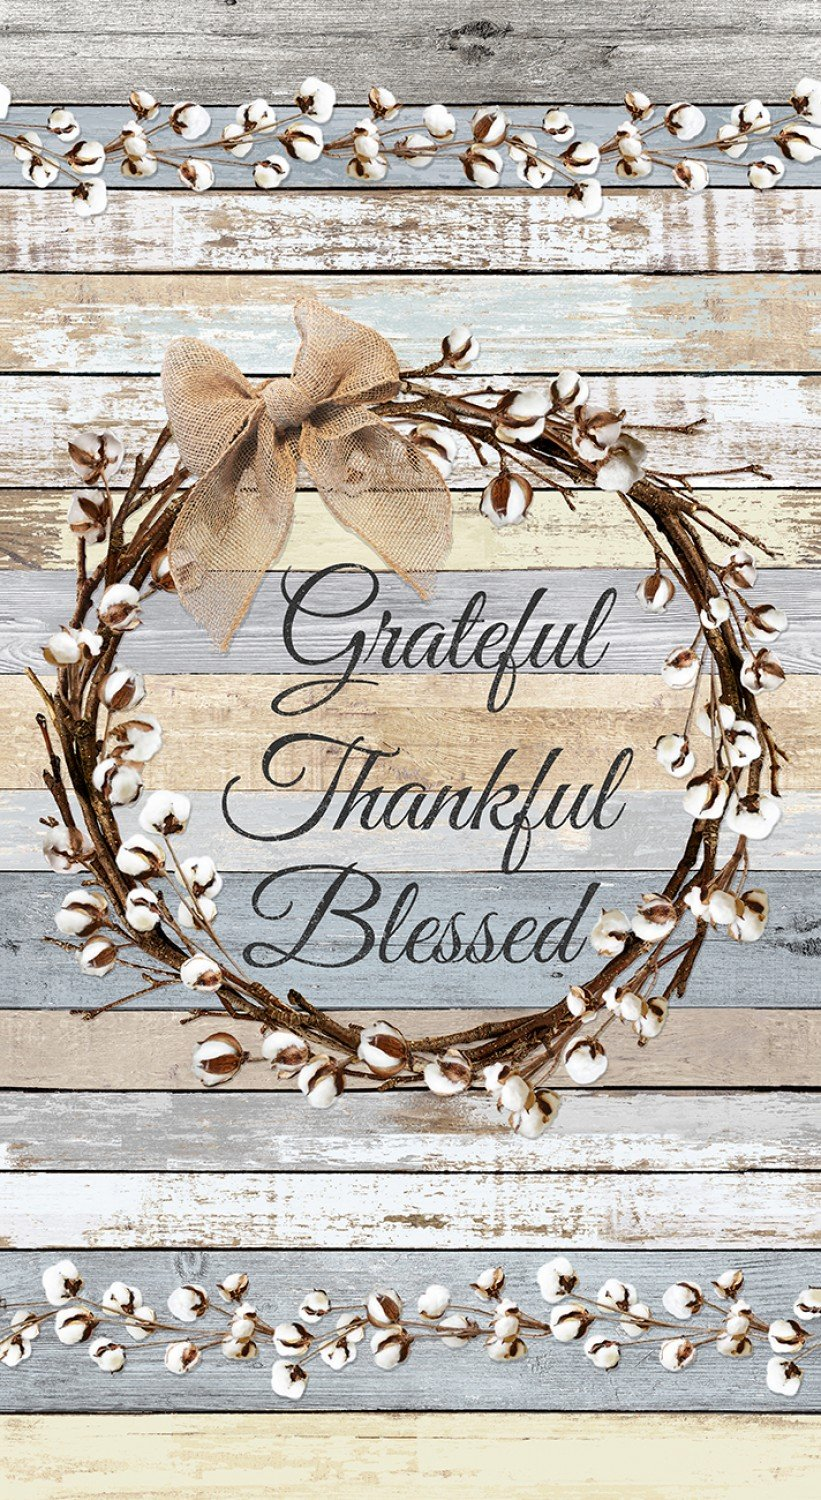 Rustic Grateful, Thankful, Blessed Cotton Wreath C7175 Panel